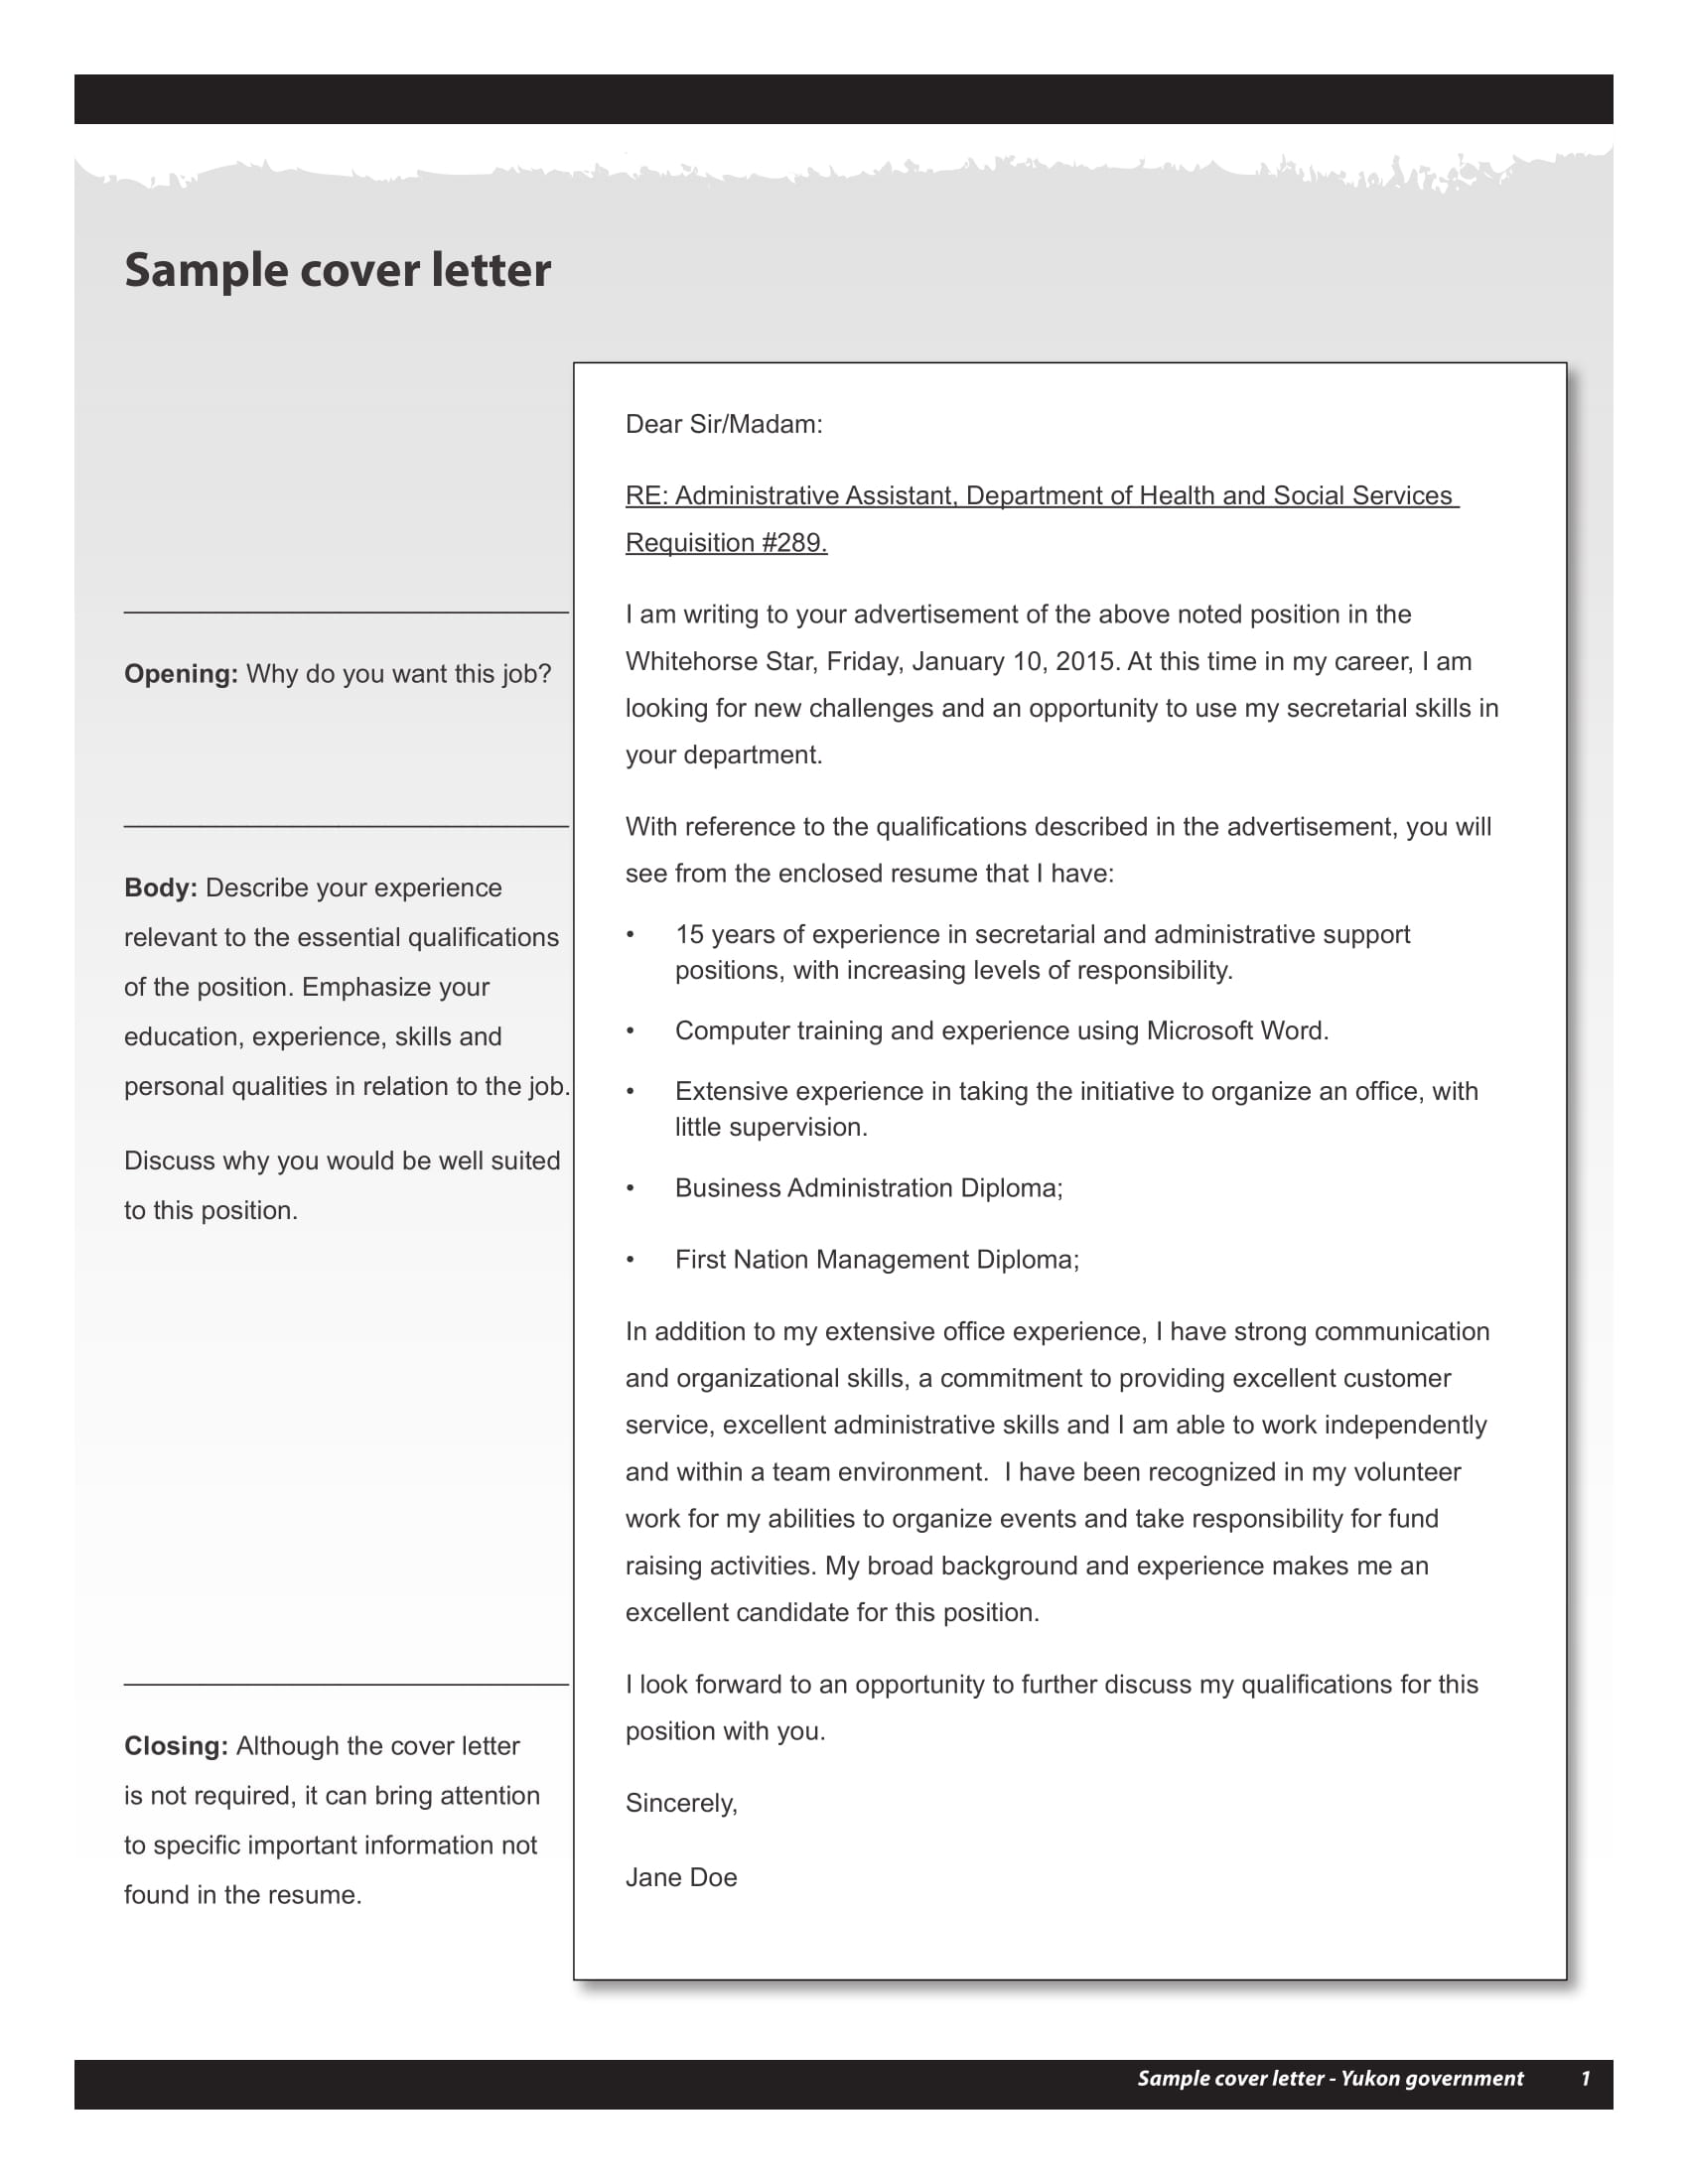 cover letter examples Get some inspiration from our cover letter examples this page provides some great cover letter examples, which may help you to write your own cover letter, or help you to consider using our professional cover letter writing services.